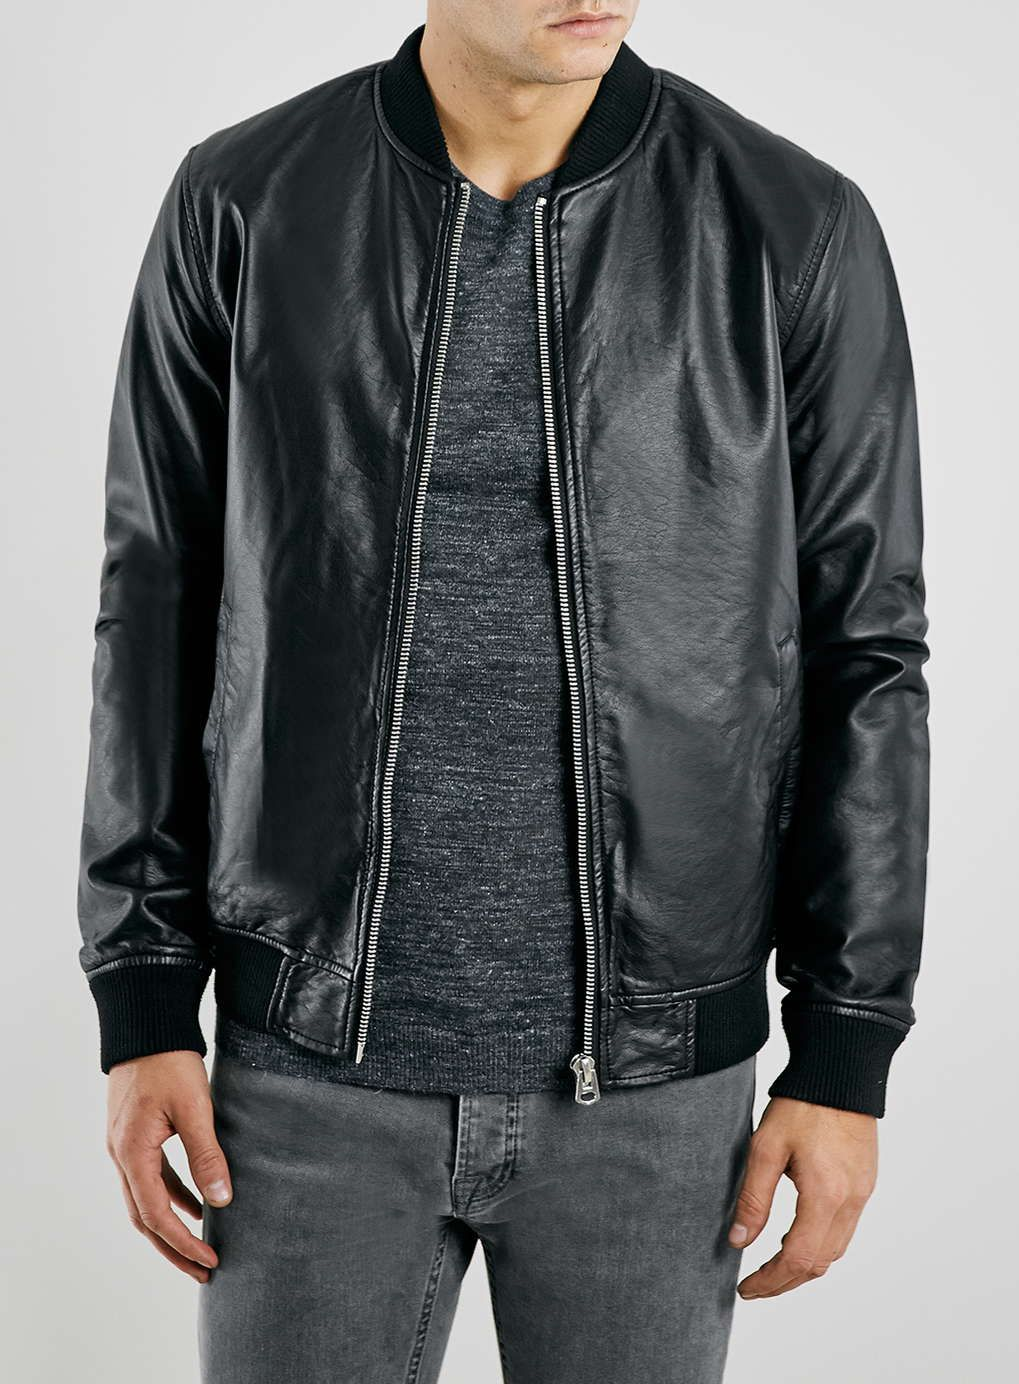 Black Leather Look Bomber Jacket | Bomber jackets Nyc and Bombers